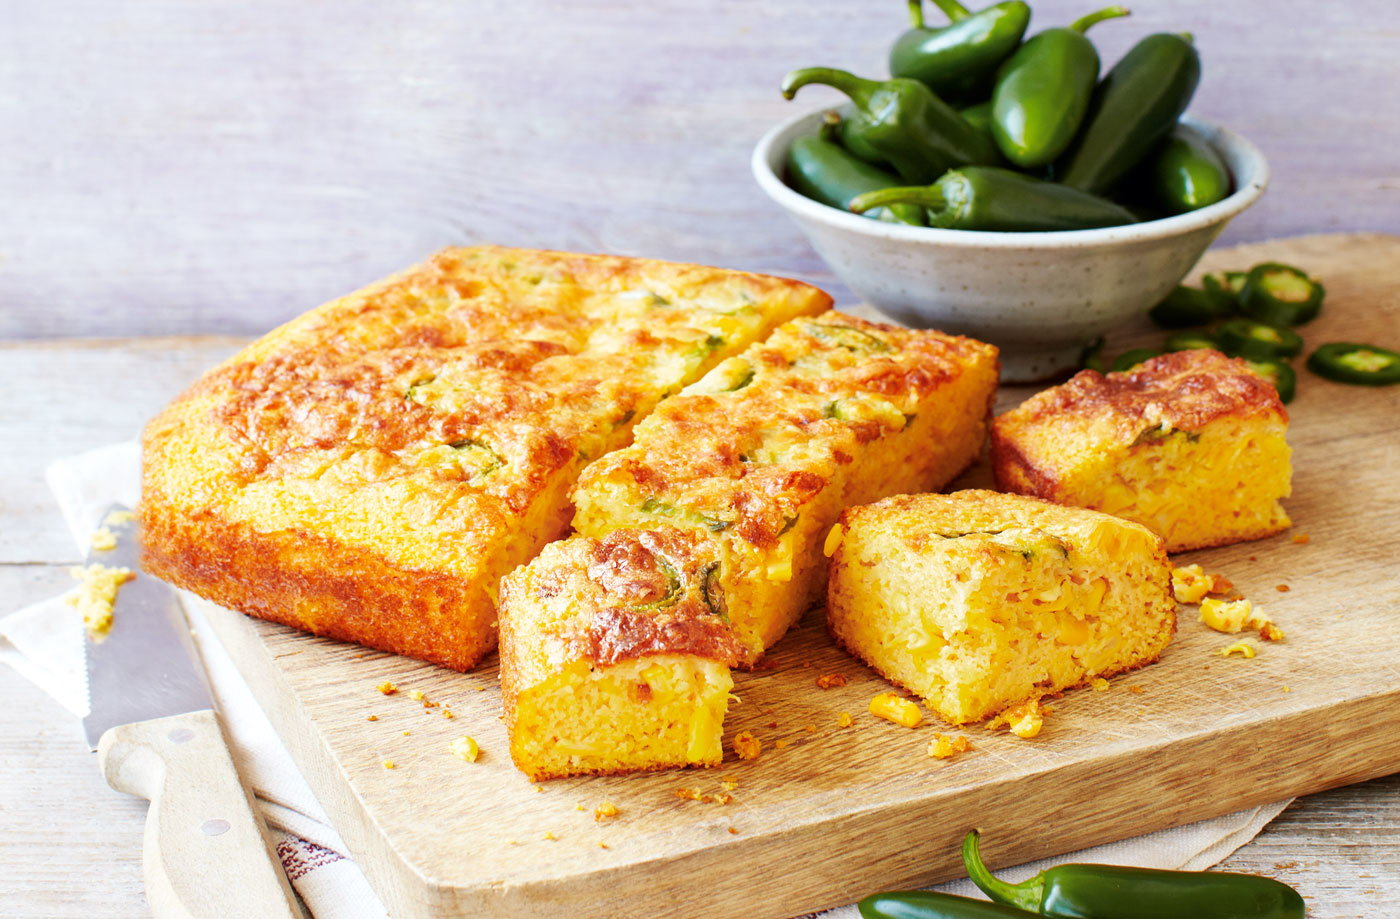 Cornbread with chilli recipe